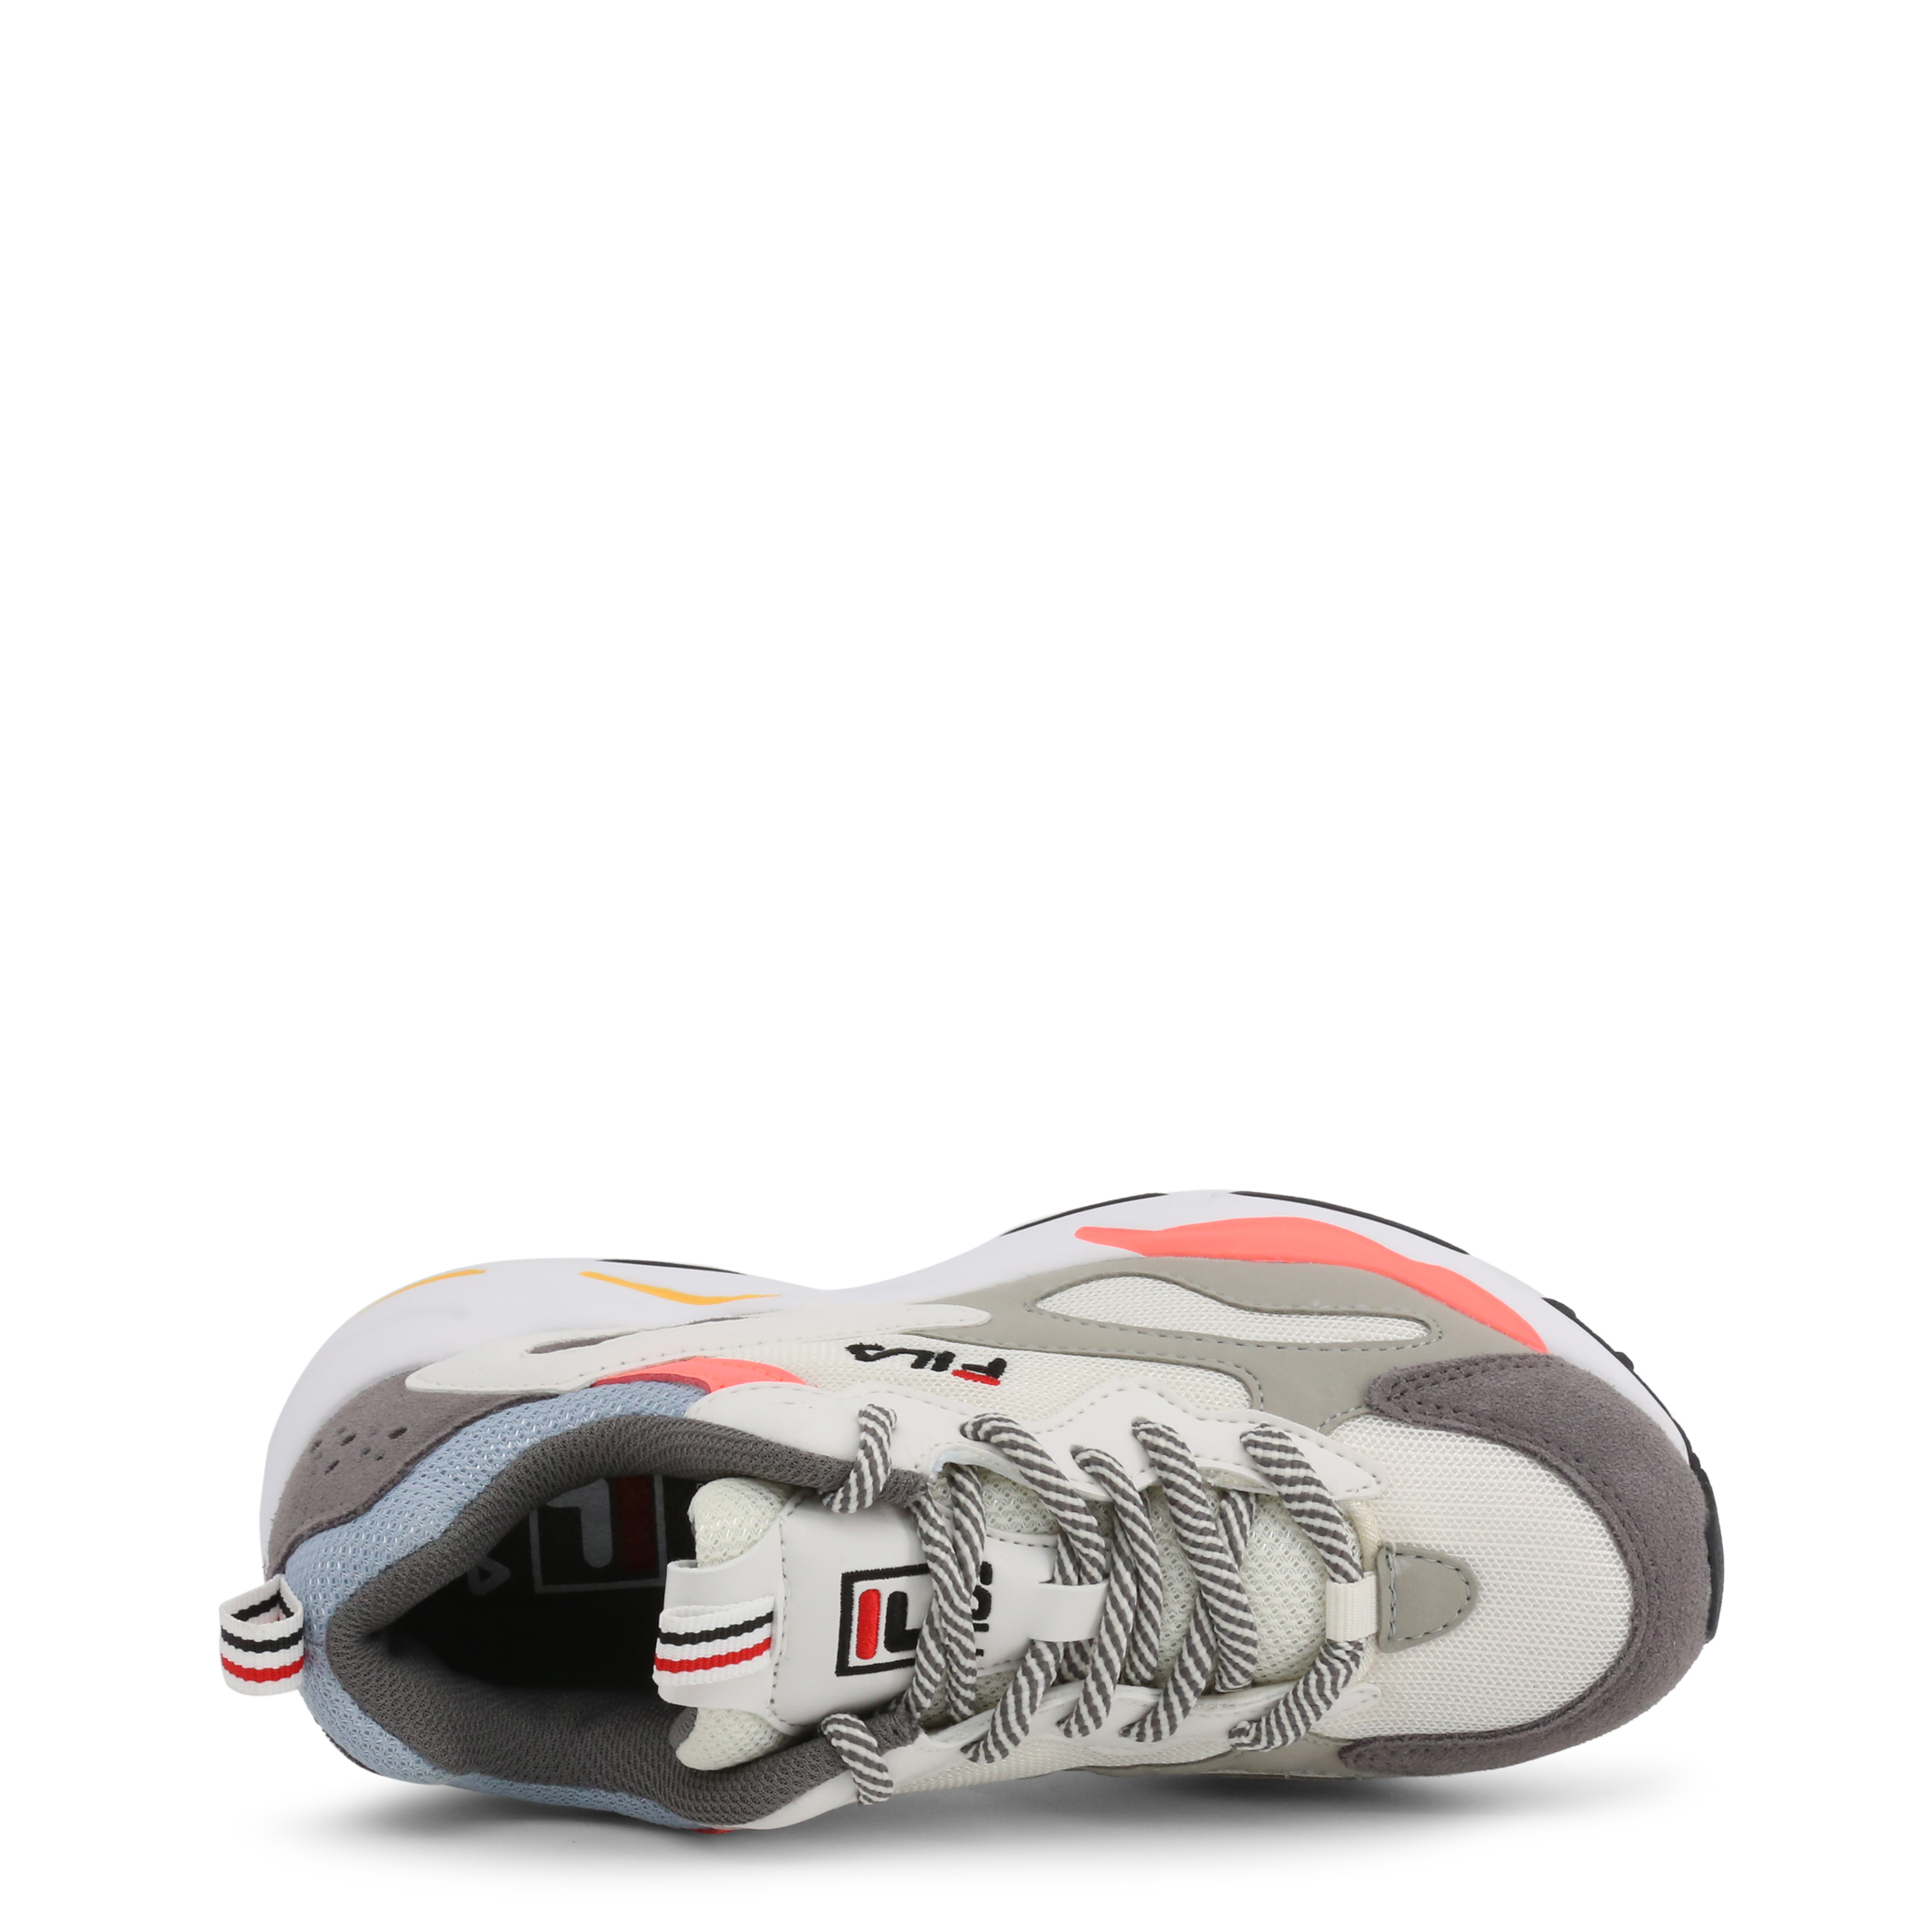 Sneakers Fila RAY-TRACER_1010686 Donna Bianco 103271